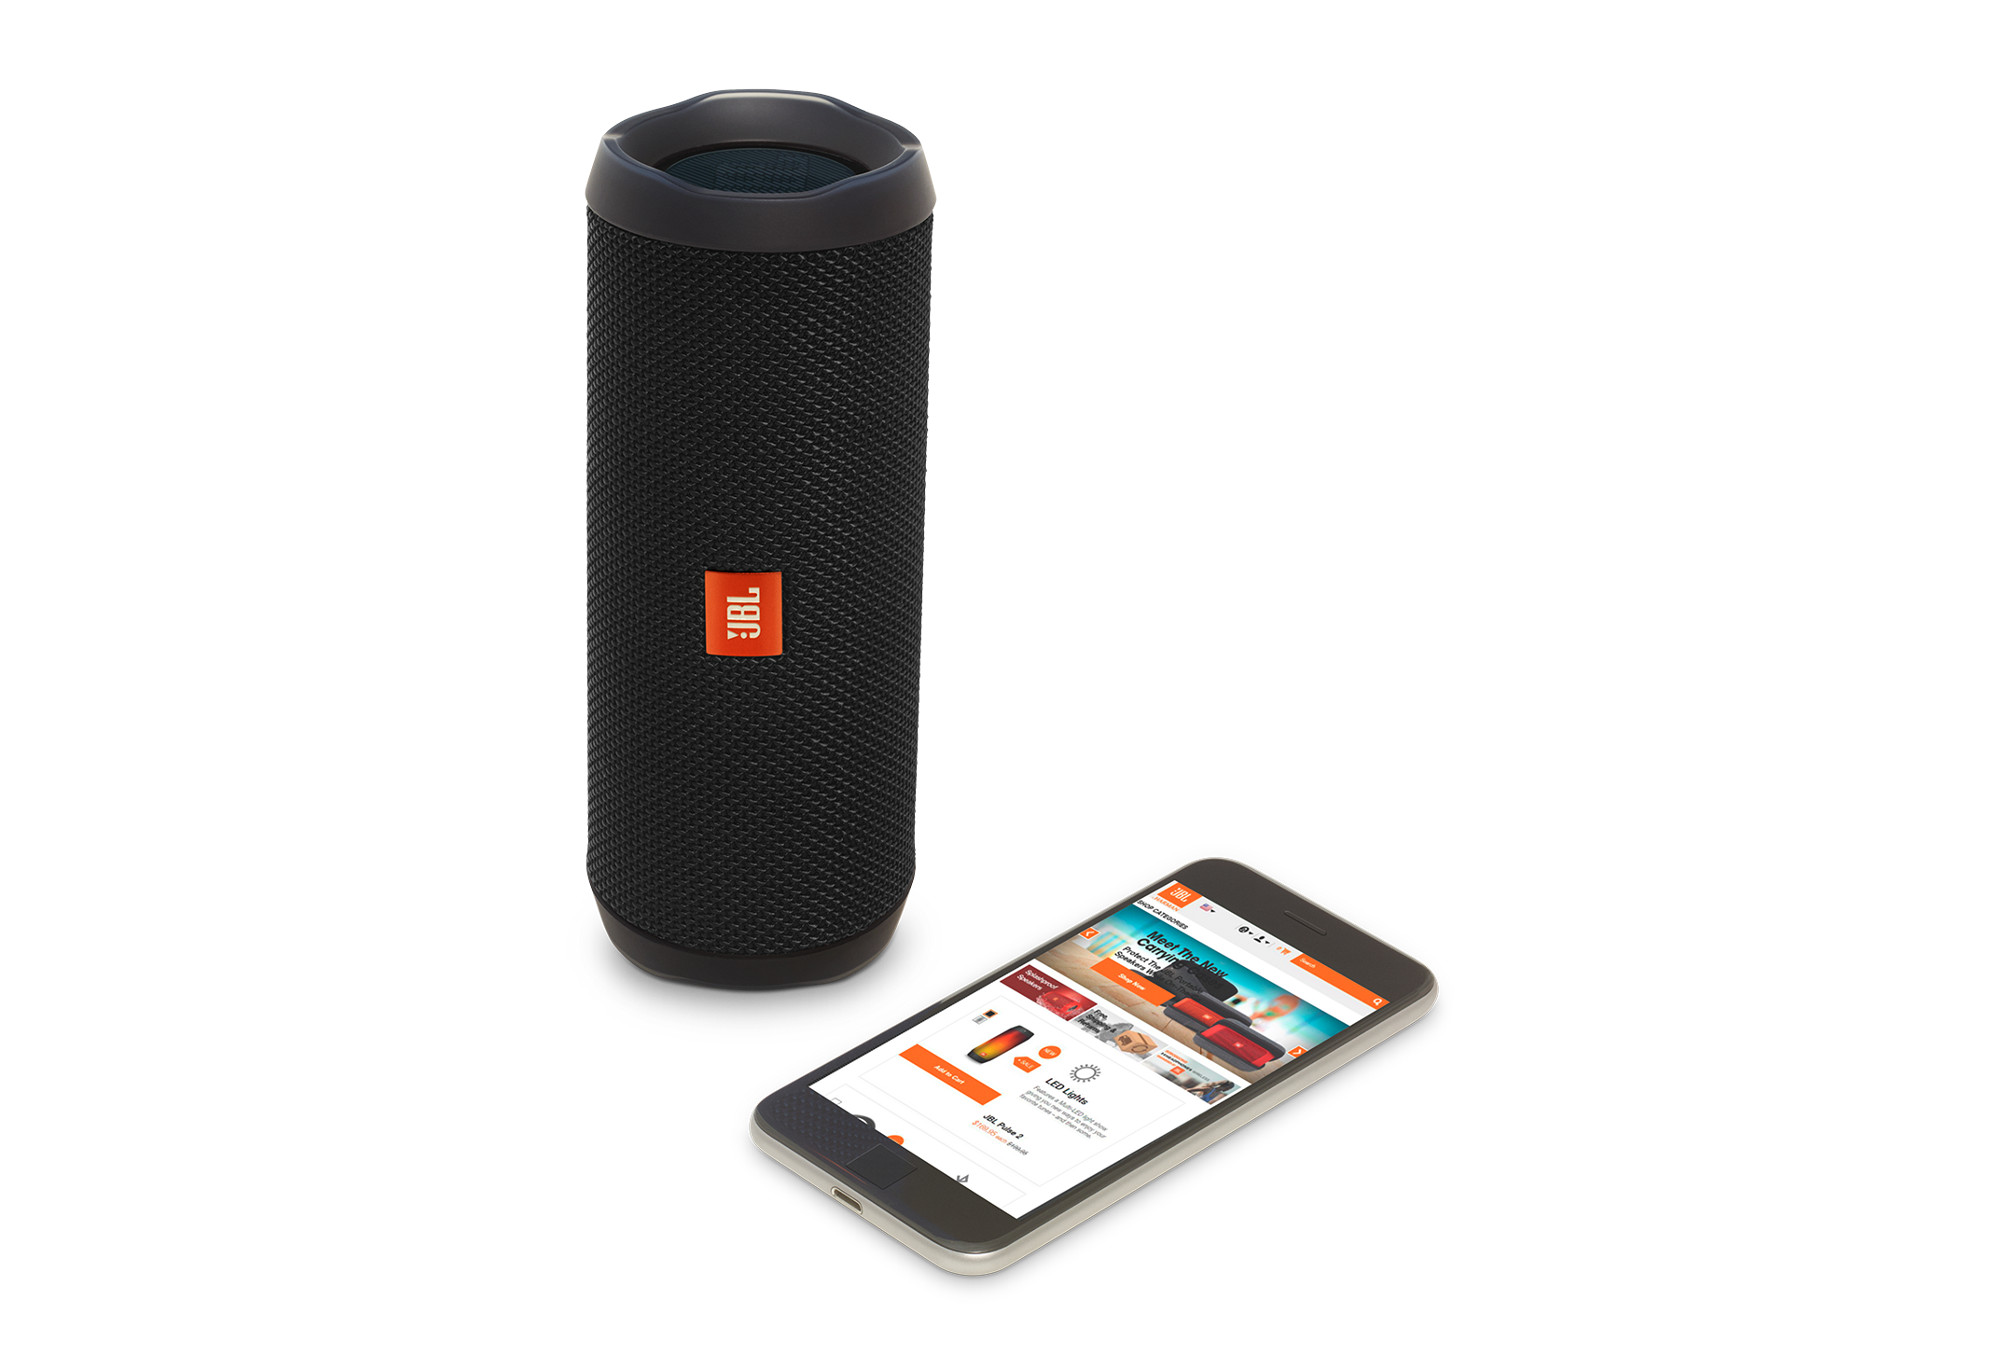 enceinte bluetooth jbl nomade flip 4 noir. Black Bedroom Furniture Sets. Home Design Ideas